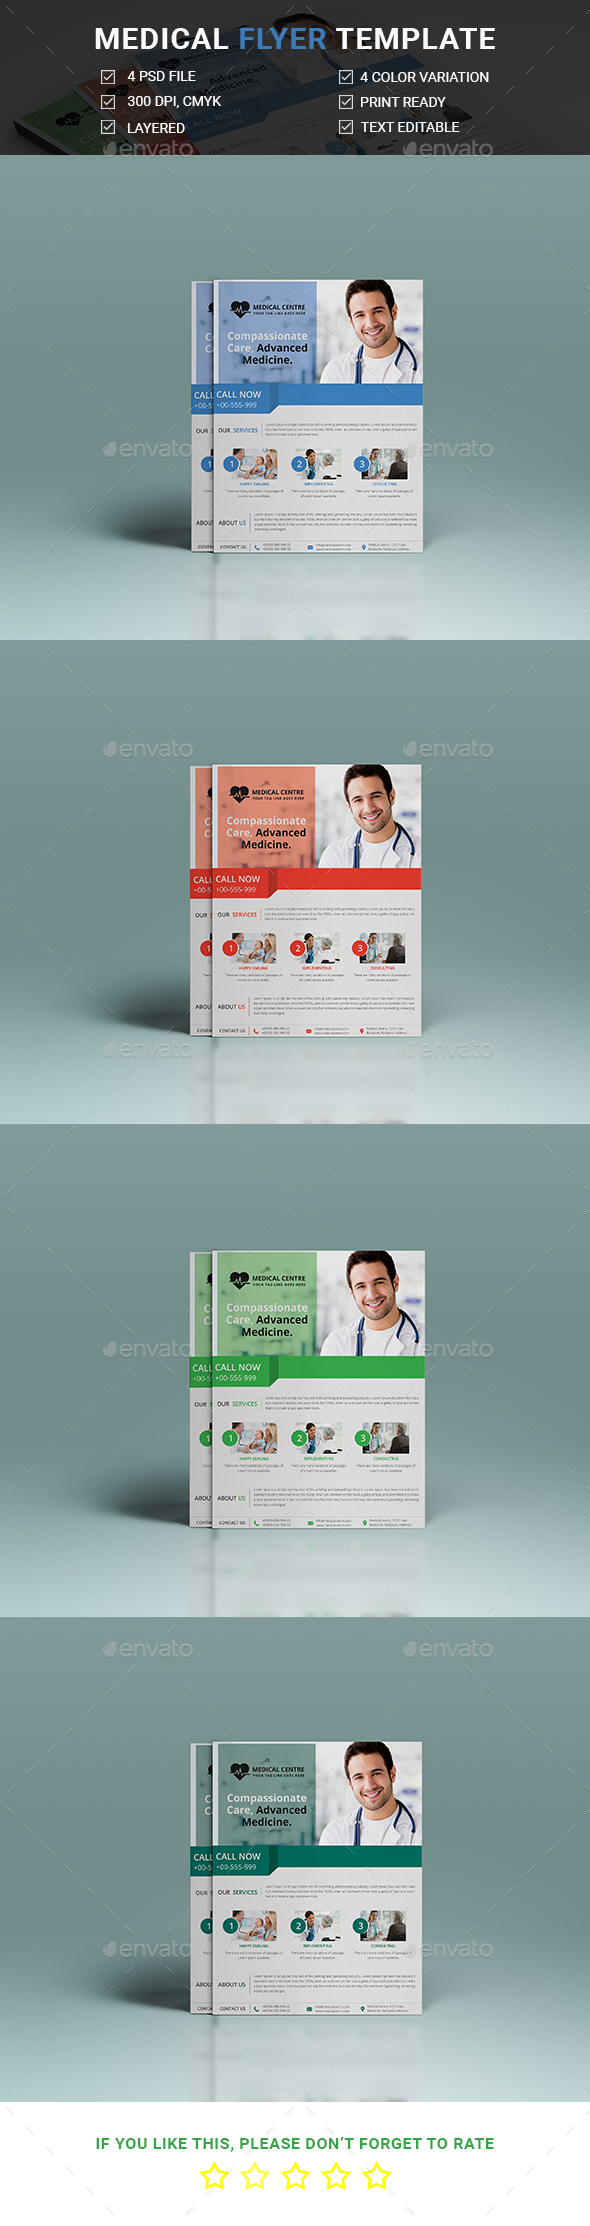 Madical Flyer Template - Corporate Flyers